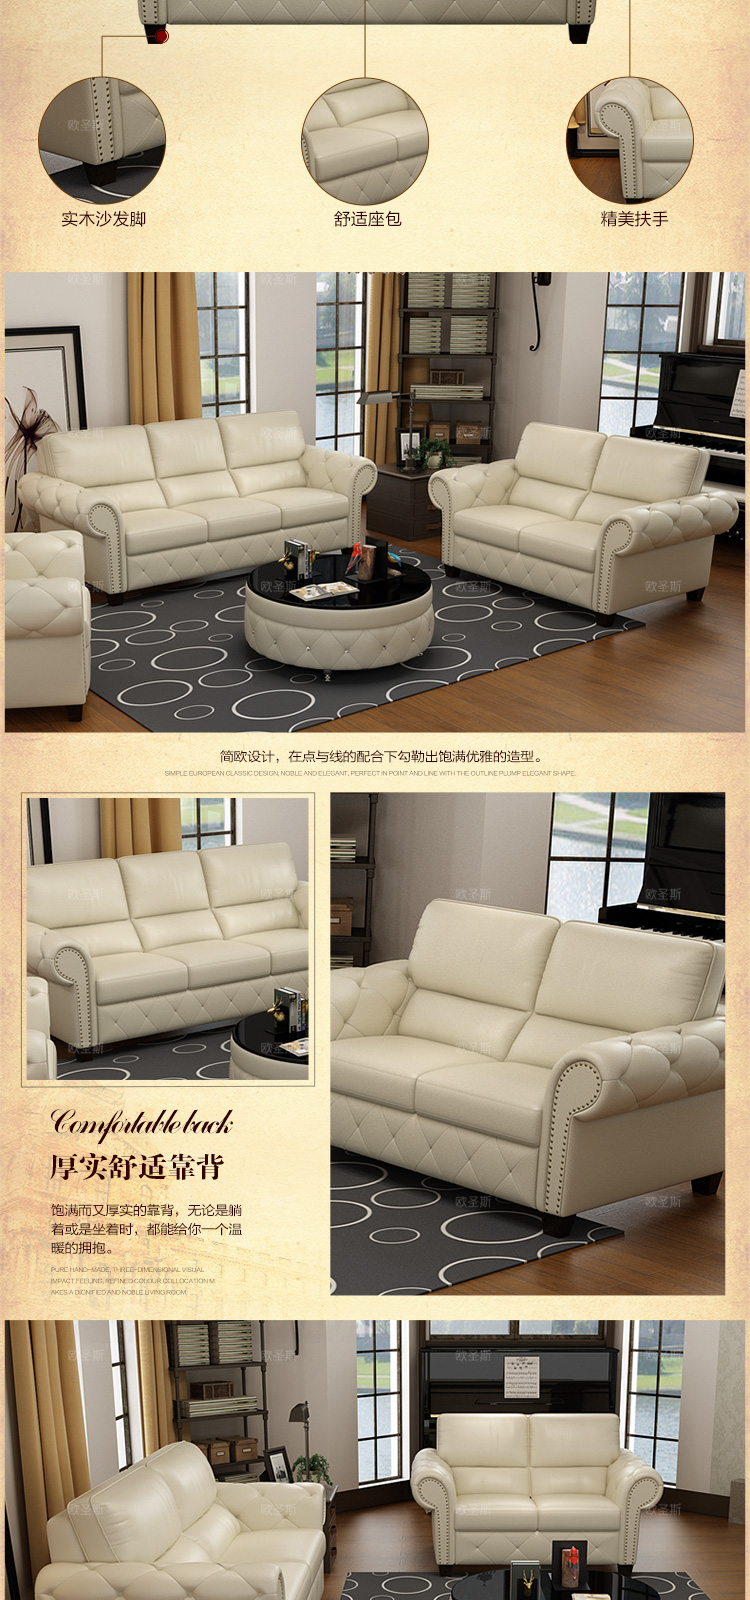 Sofa Set Price New Us 1100 Luxury New Classic European Royal Sofa Set Designs American Style Livingroom 3 Seater Leather Sofa Set Furniture Price List F79a In Living